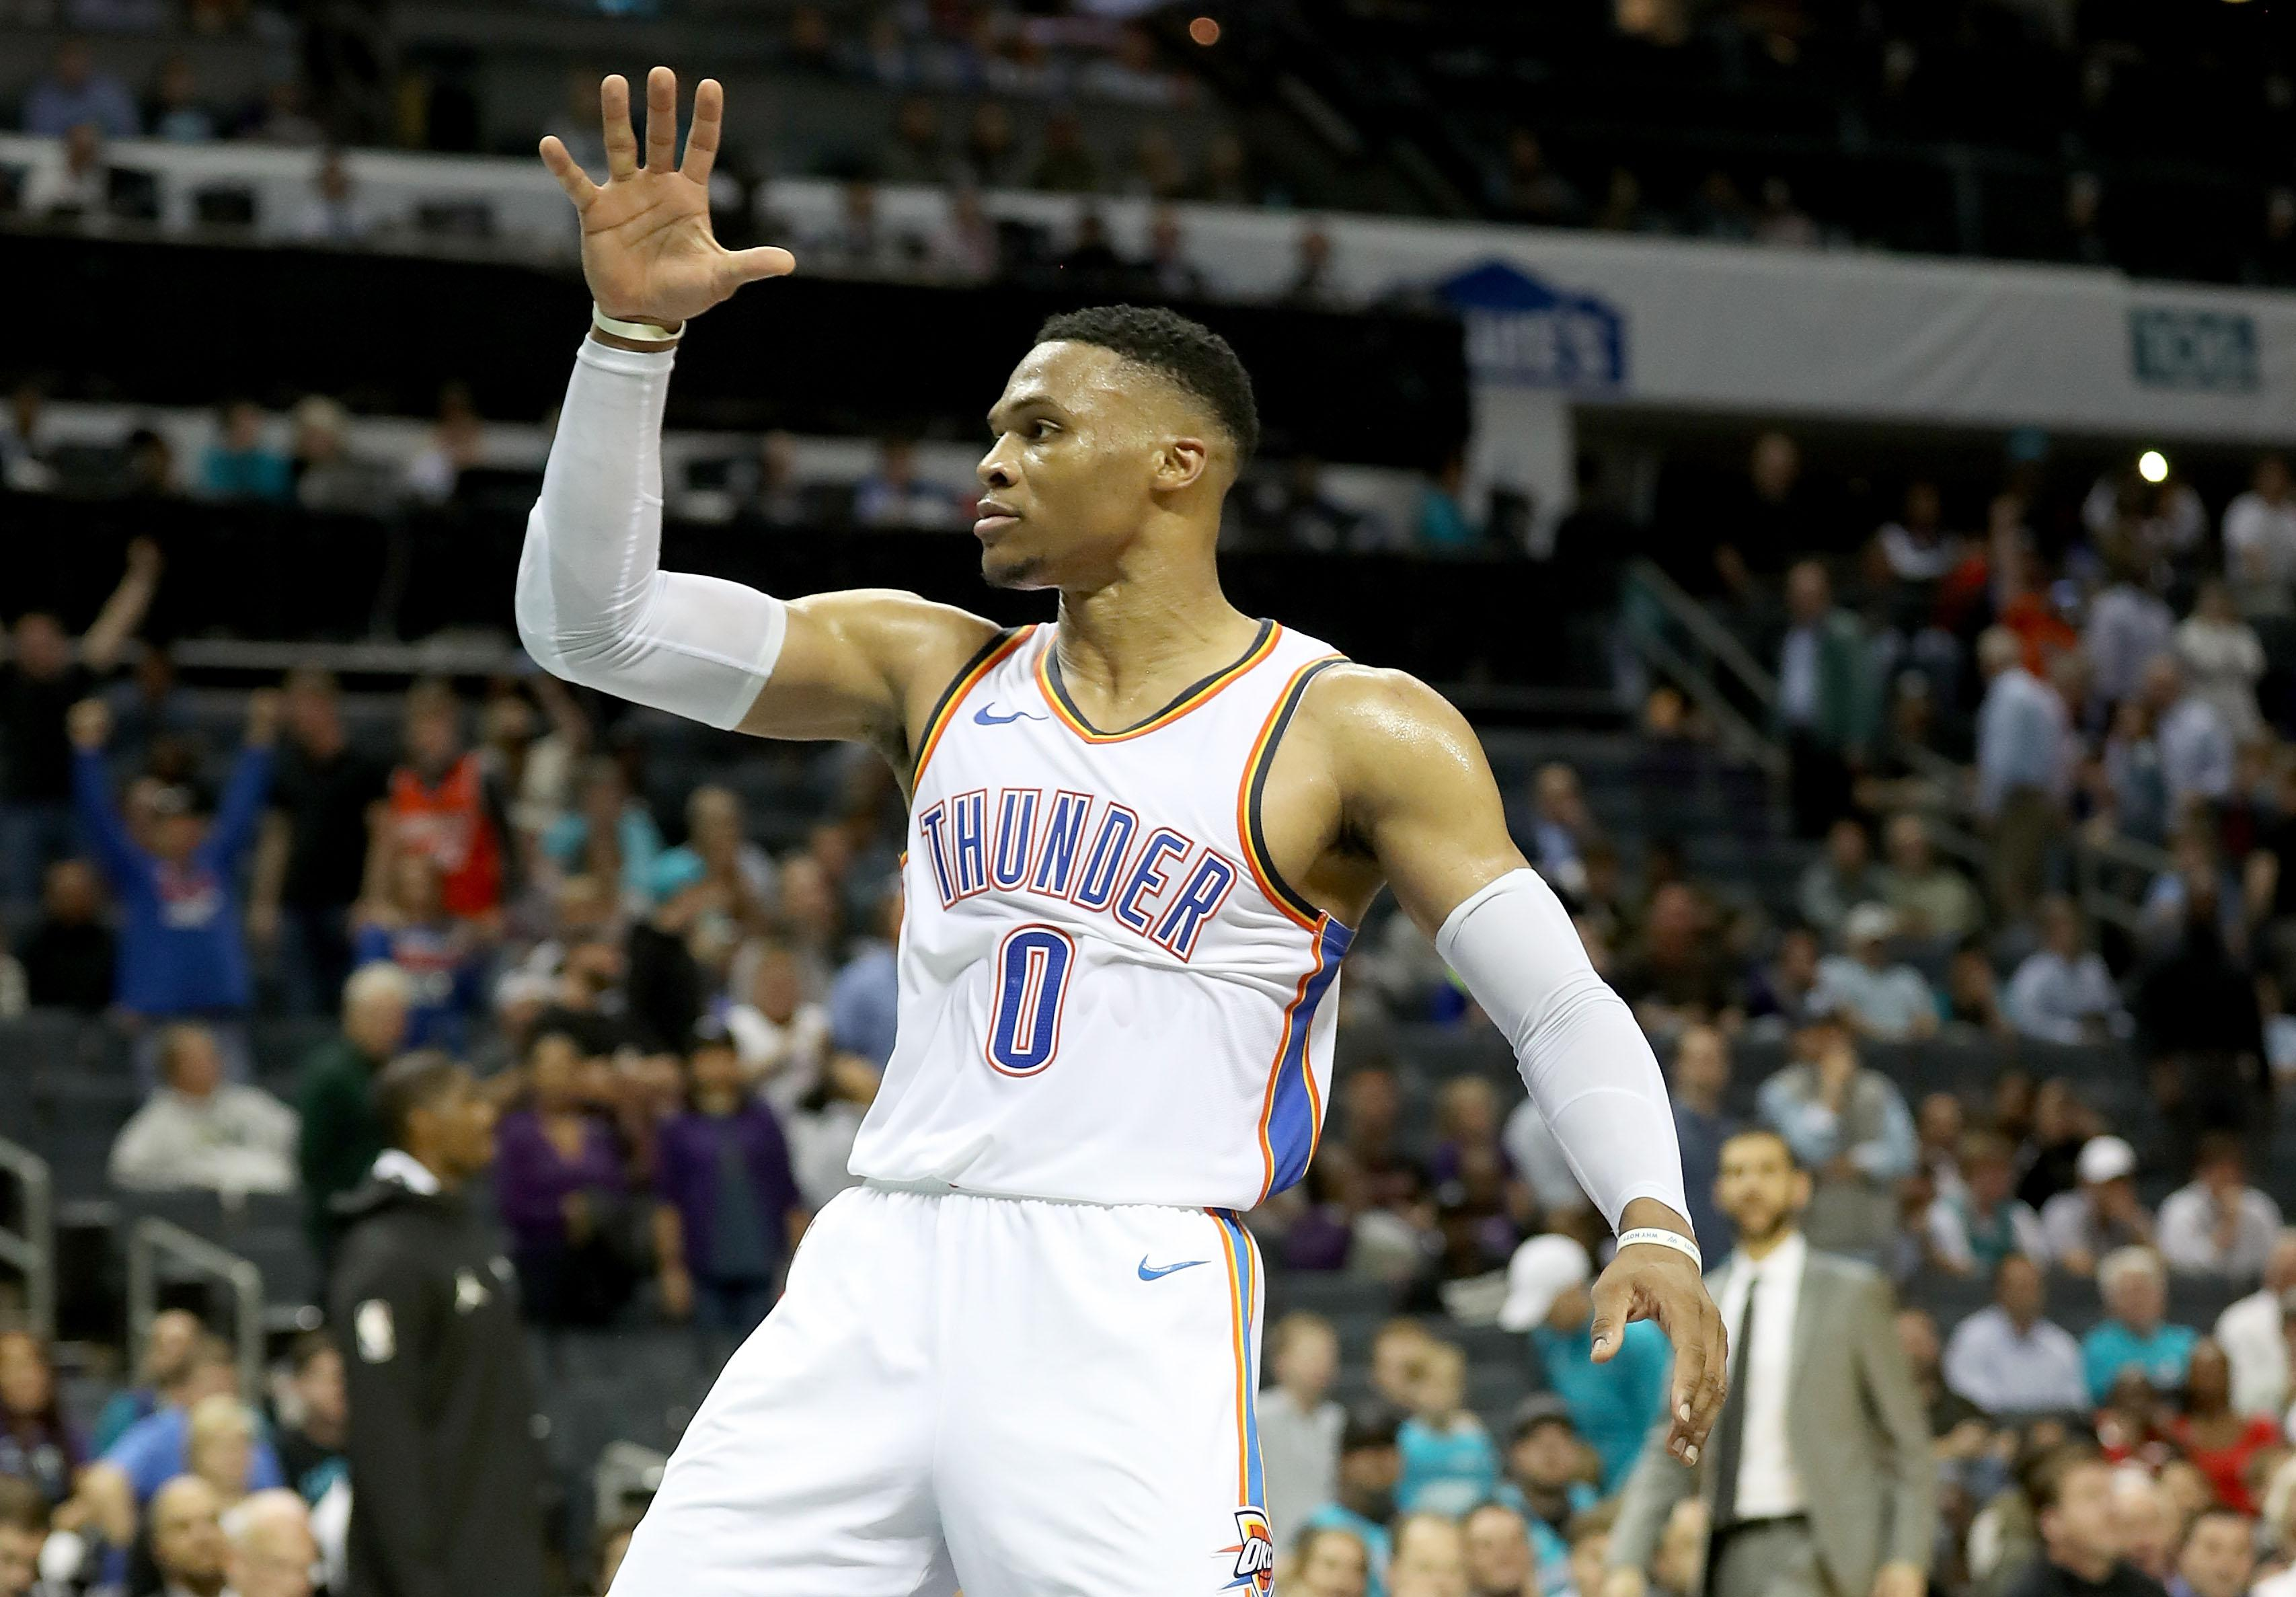 CHARLOTTE, NC - NOVEMBER 01:  Russell Westbrook #0 of the Oklahoma City Thunder reacts after a dunk against the Charlotte Hornets during their game at Spectrum Center on November 1, 2018 in Charlotte, North Carolina. NOTE TO USER: User expressly acknowledges and agrees that, by downloading and or using this photograph, User is consenting to the terms and conditions of the Getty Images License Agreement.  (Photo by Streeter Lecka/Getty Images)